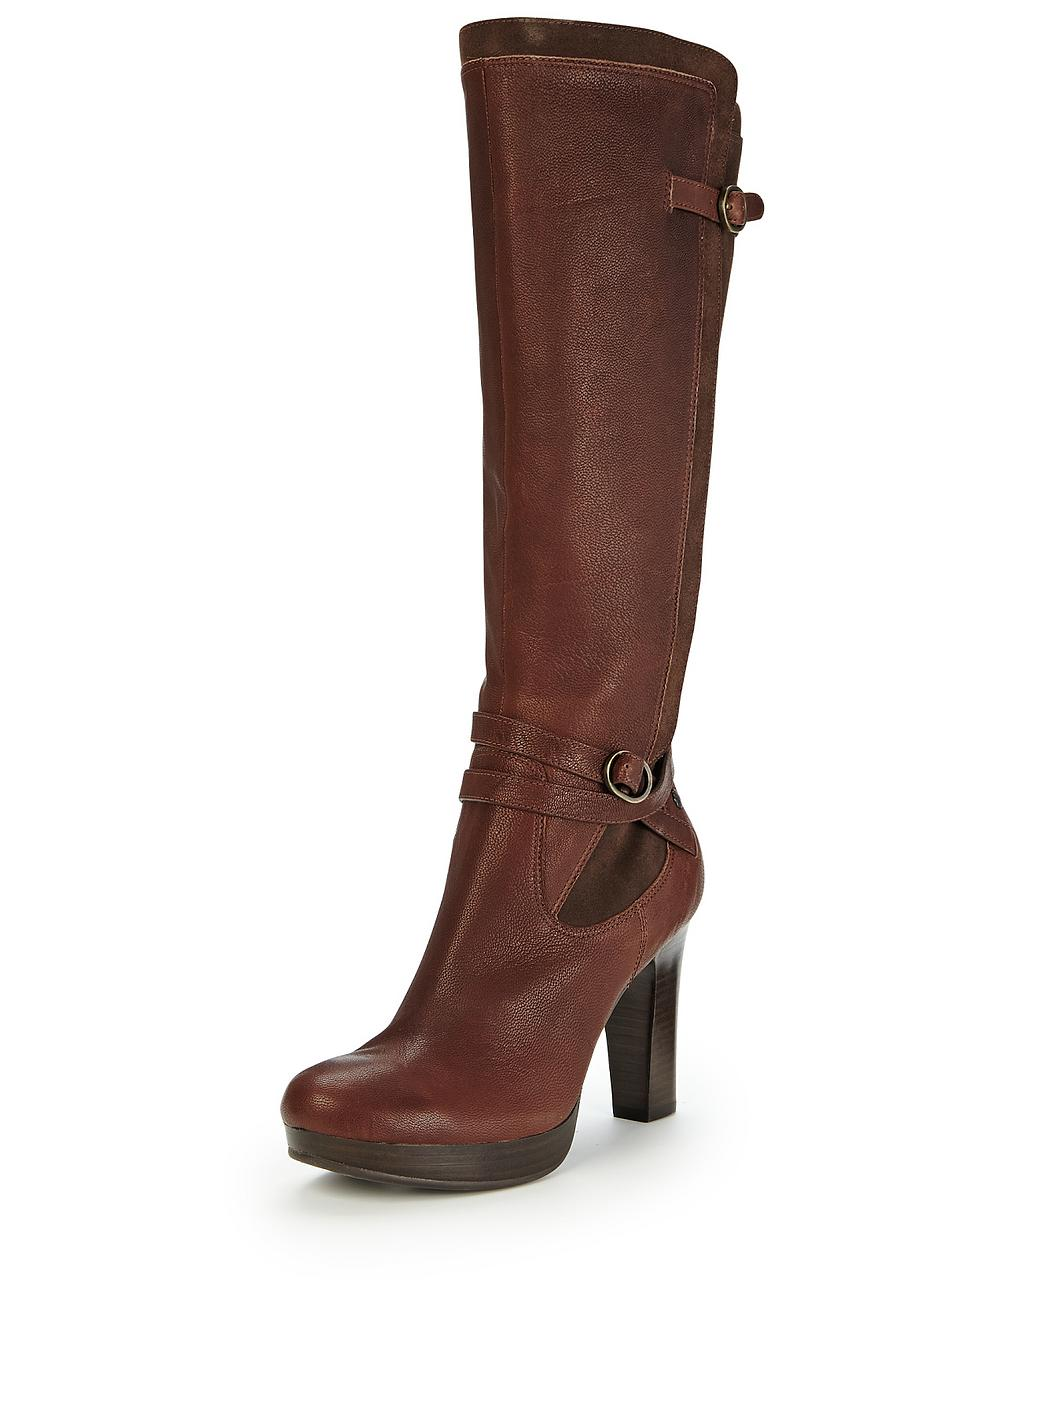 ugg australia linde heeled leather knee high boots